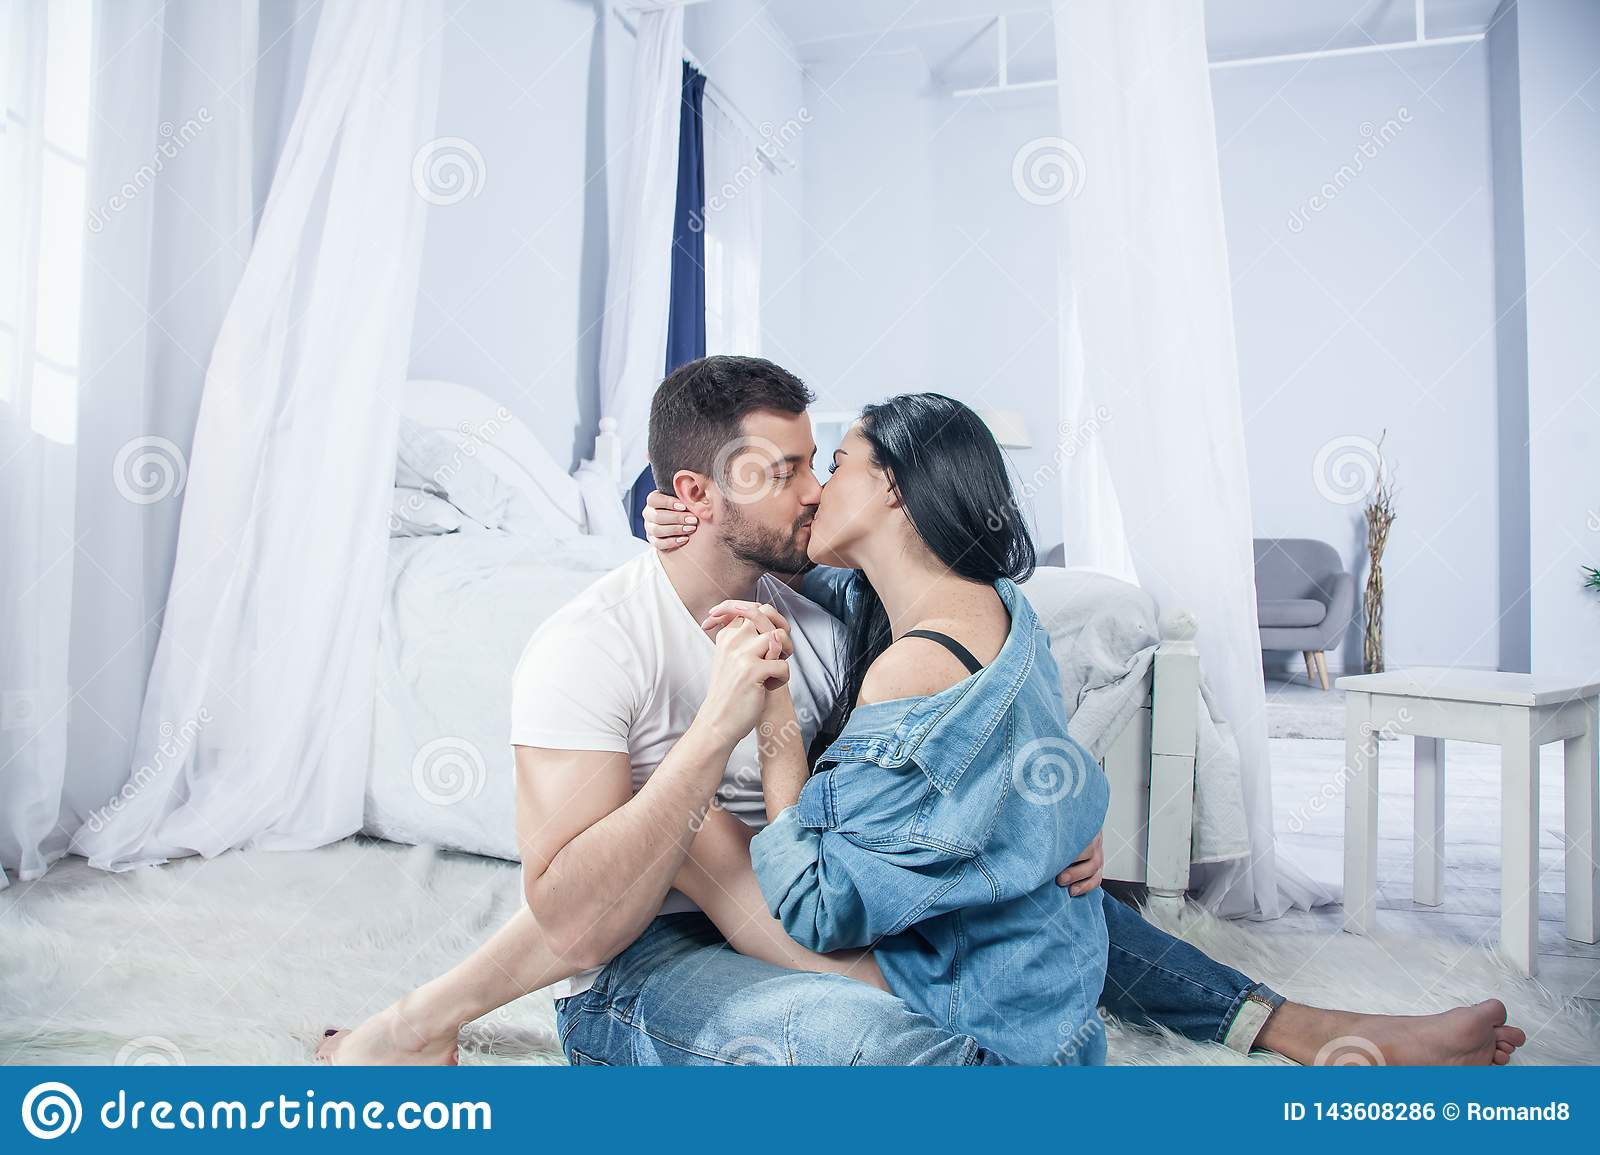 Sensual Couple Kiss I Love You Couple In Love Romantic And Love